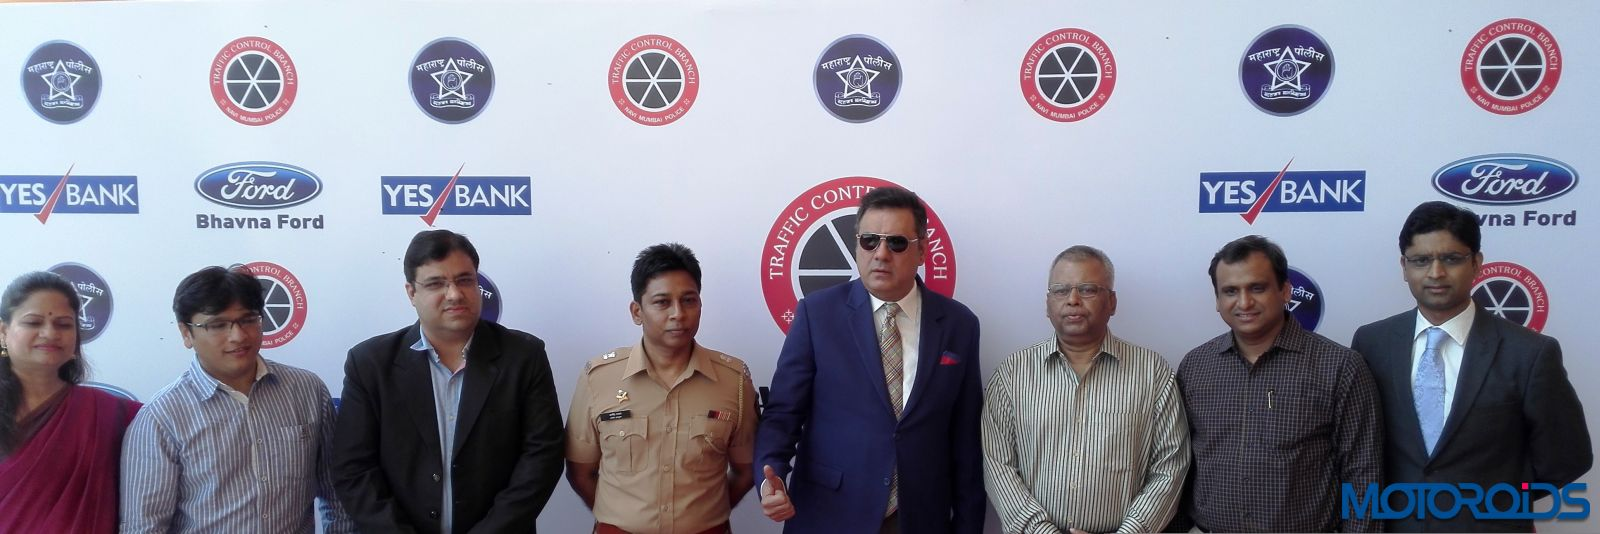 Yes bank partner Road Safety Week